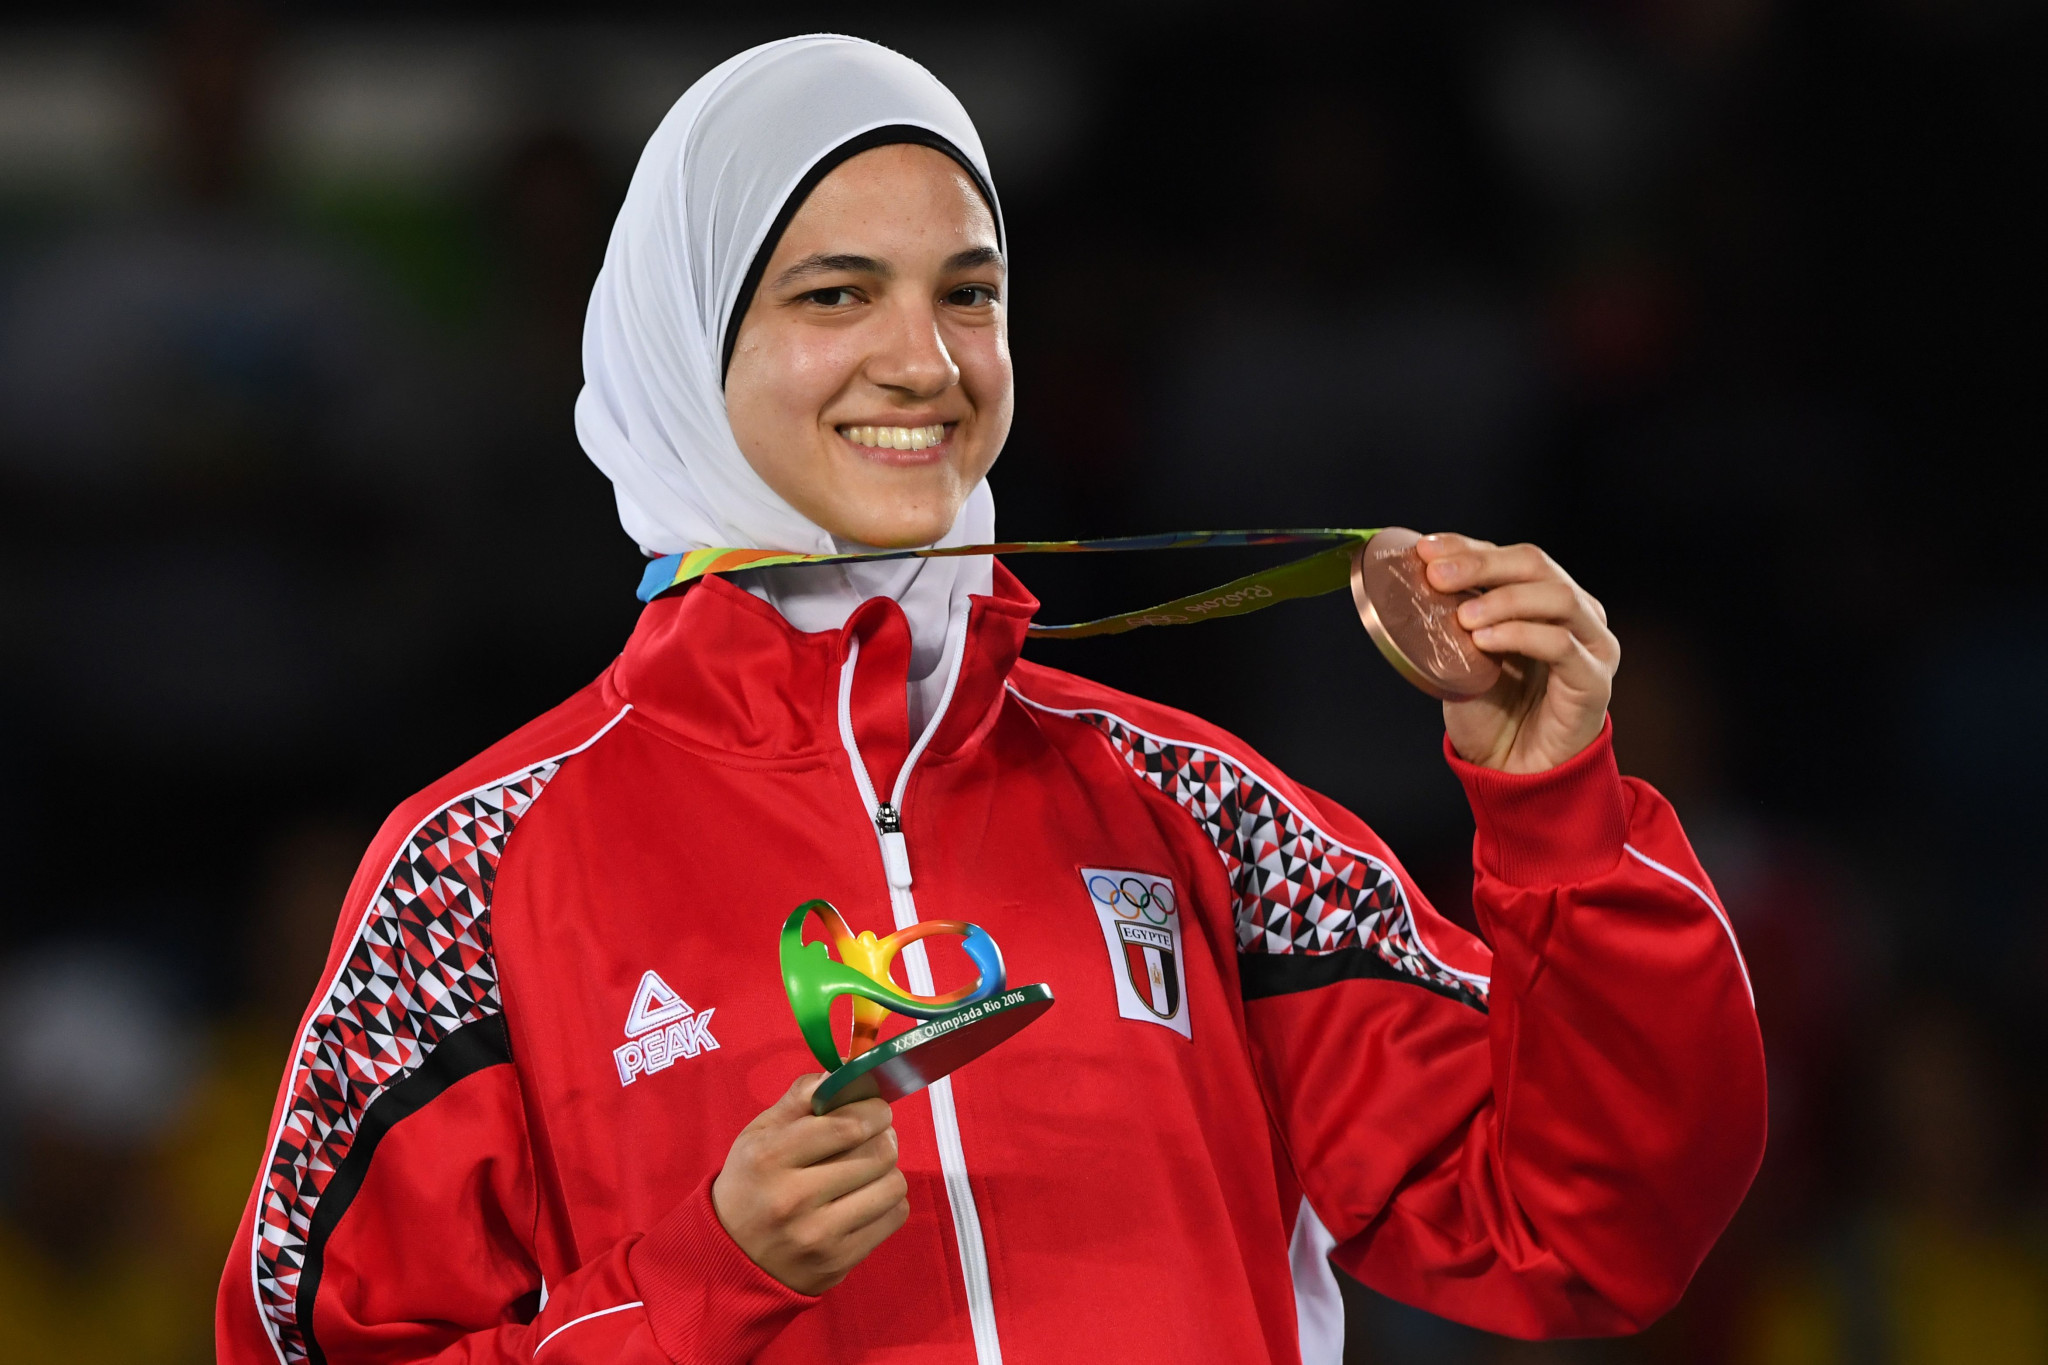 Mohamed Shaaban was the Egyptian national teams' director when Hedaya Malak won a women's 57kg bronze medal at the Rio 2016 Olympic Games ©Getty Images